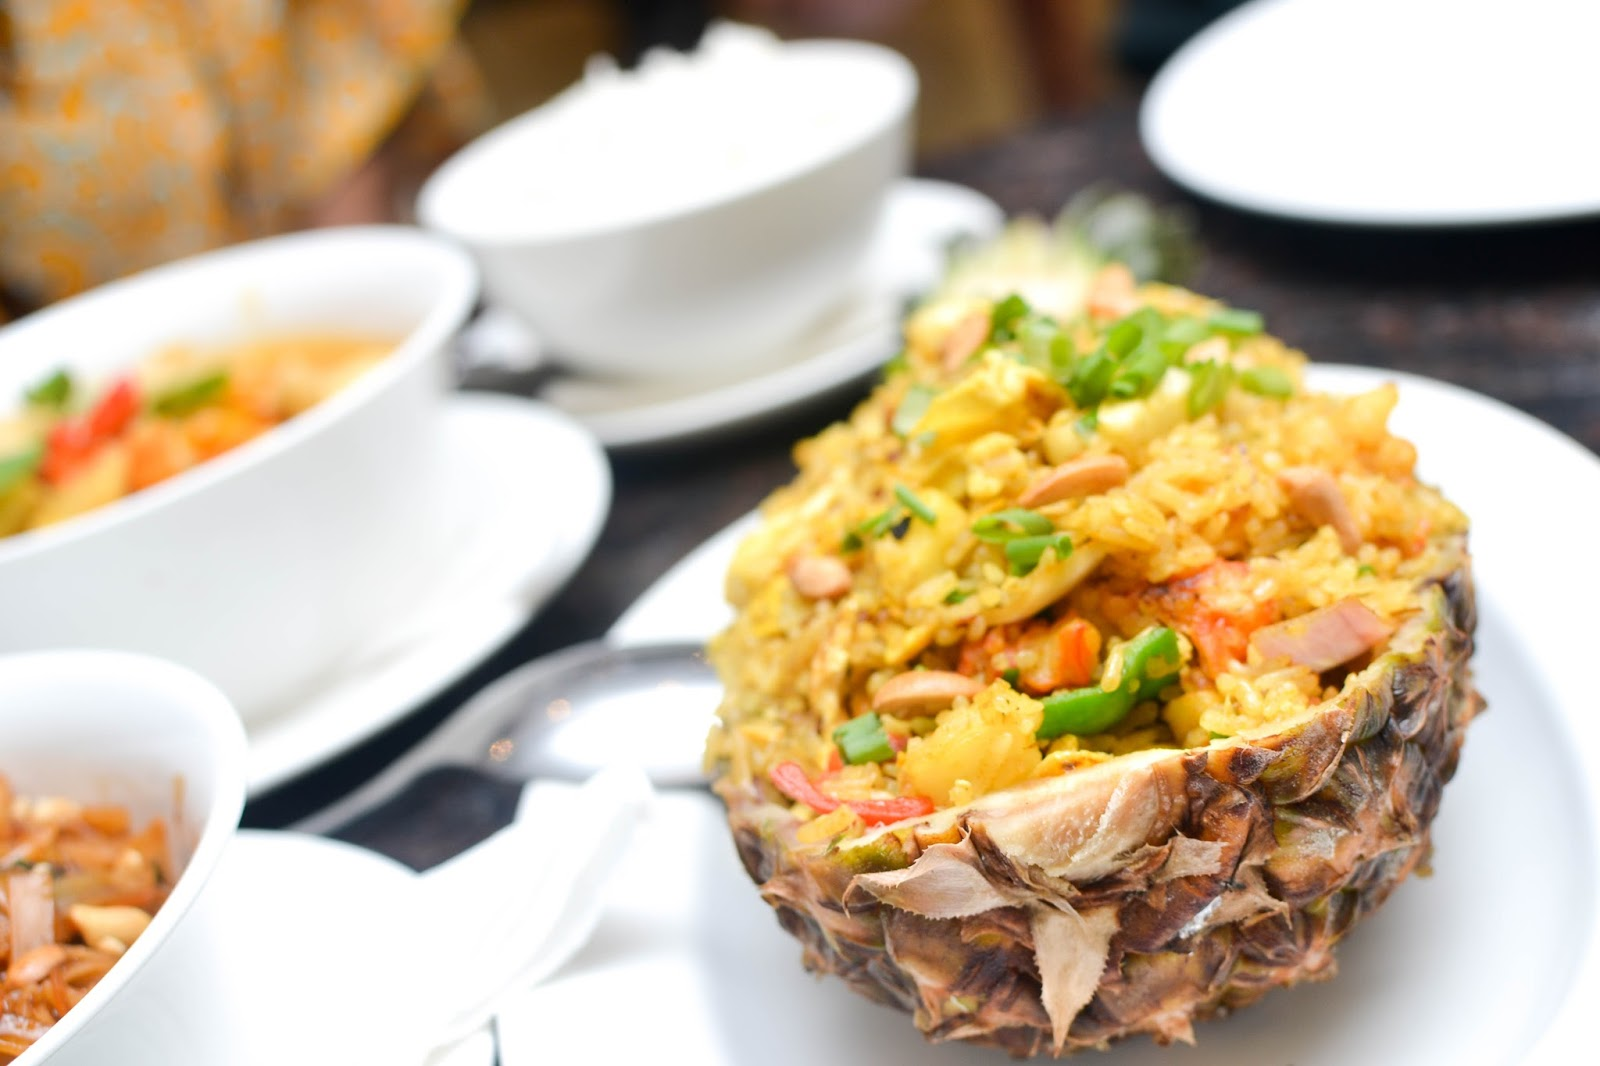 Prawns Pineapple Fried Rice in Lagos